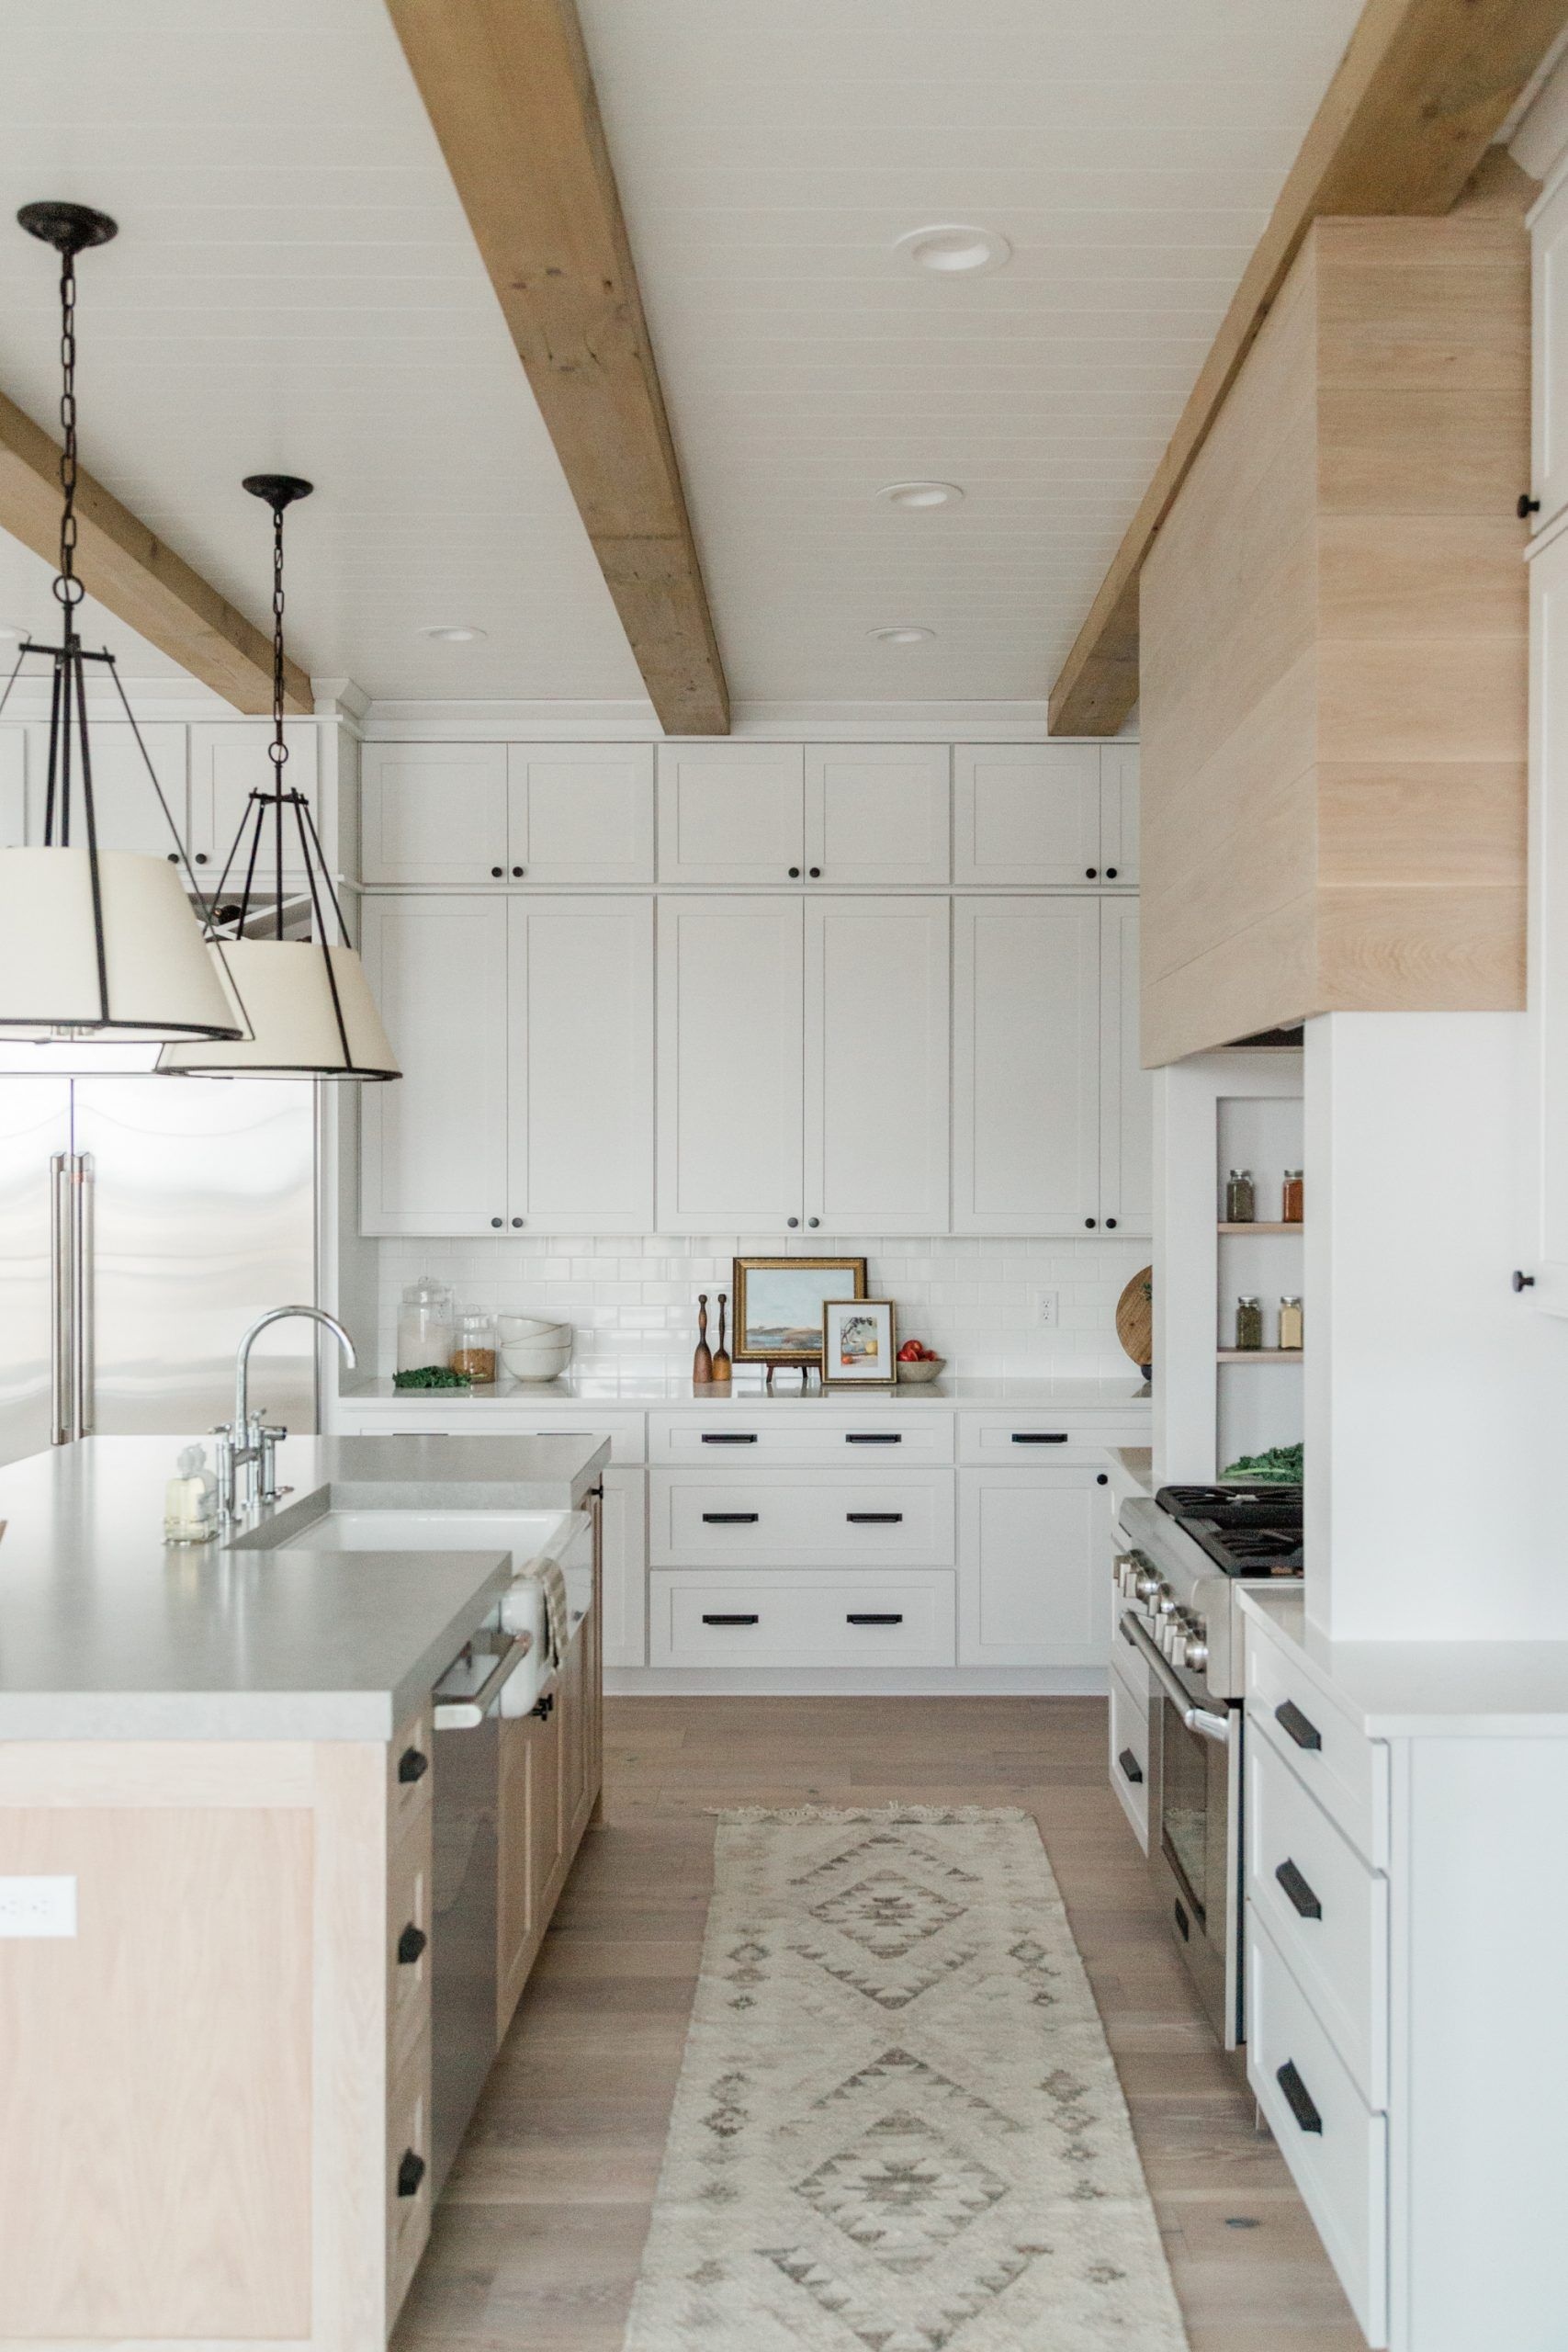 Beautiful Kitchen Design Ideas To Inspire Your Next Renovation Kitchen Inspiration Design Kitchen Design Beautiful Kitchens